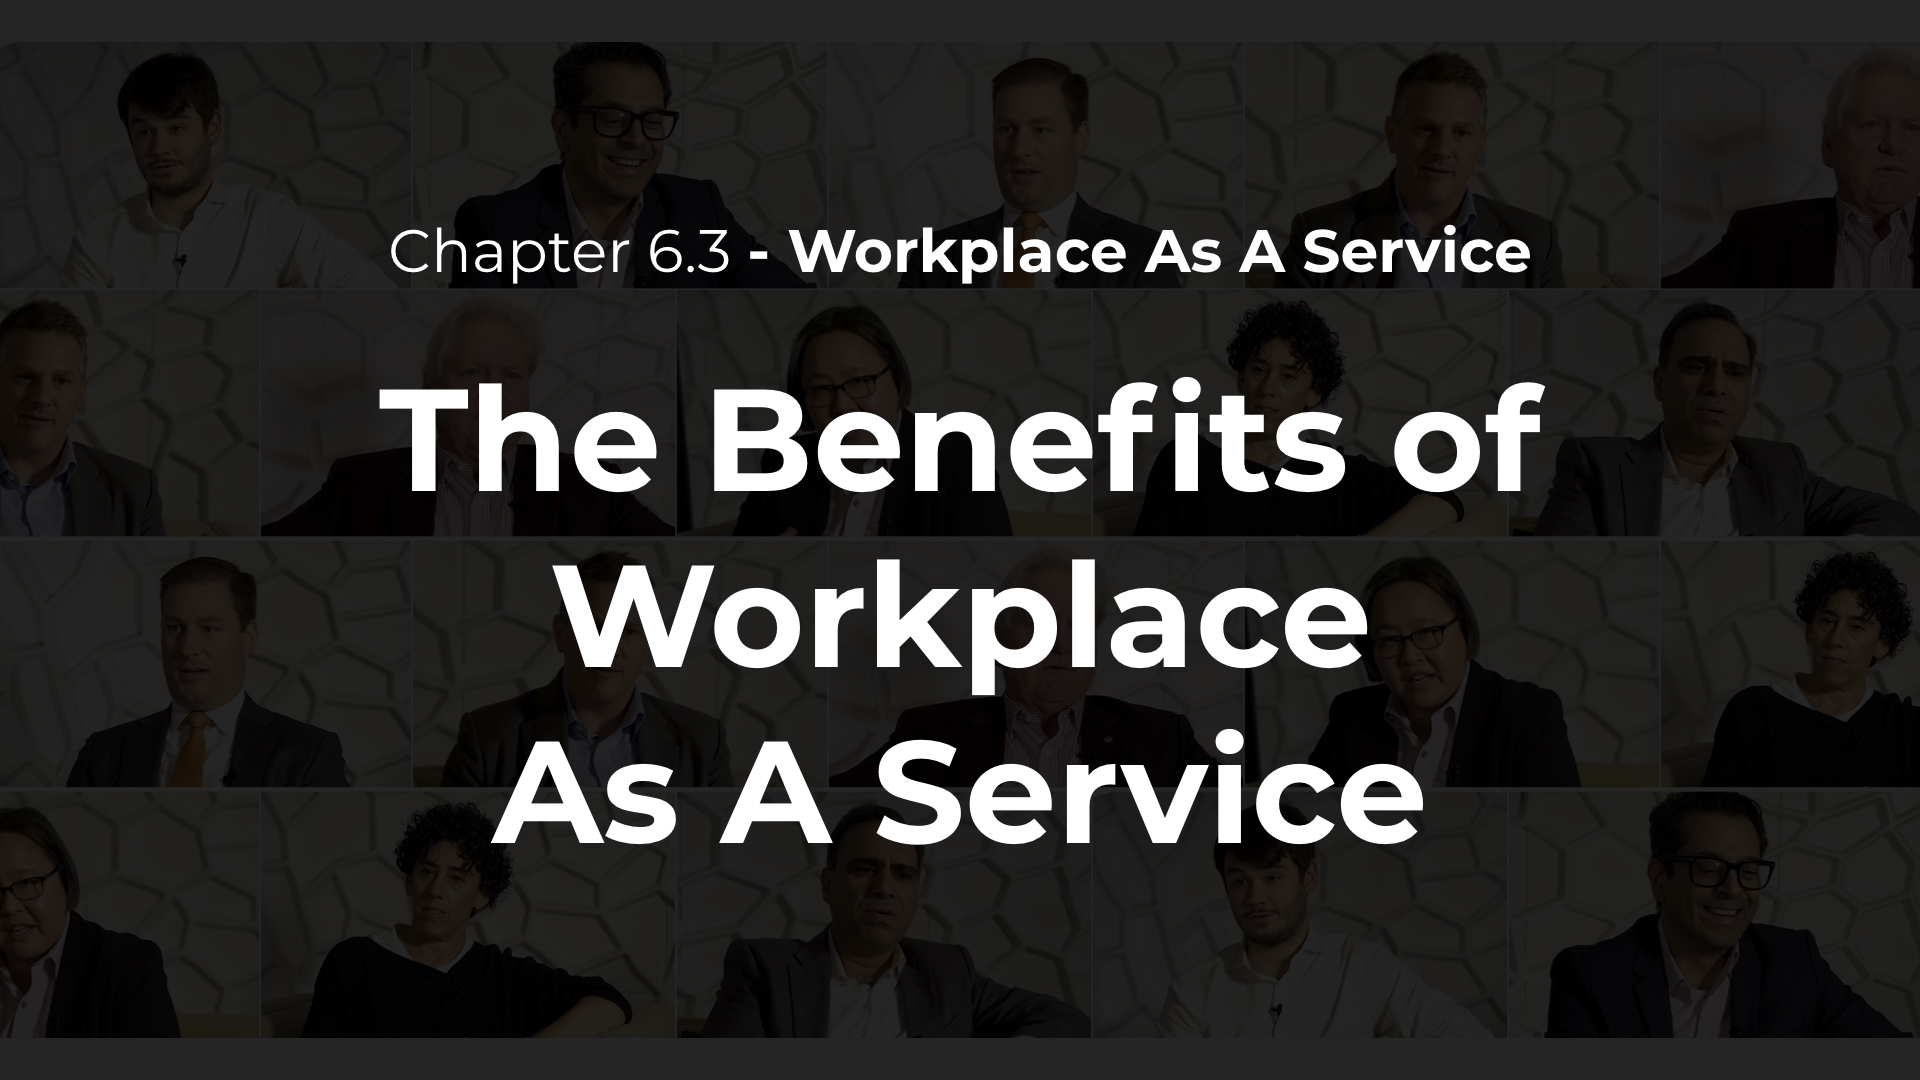 6.3 - The Benefits of Workplace As A Service